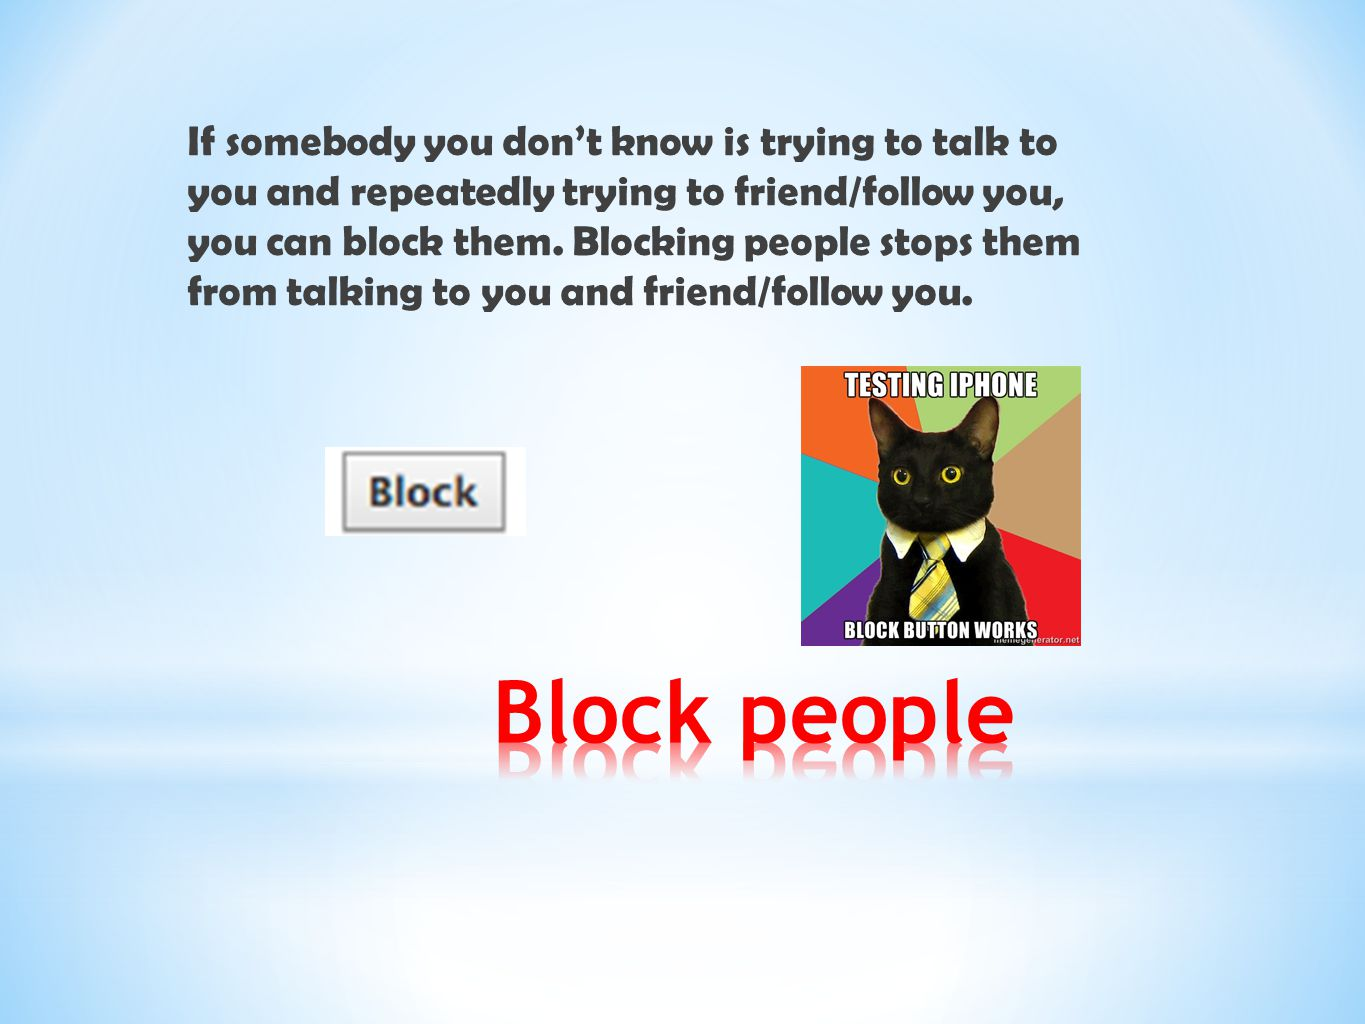 If somebody you don't know is trying to talk to you and repeatedly trying to friend/follow you, you can block them. Blocking people stops them from ta